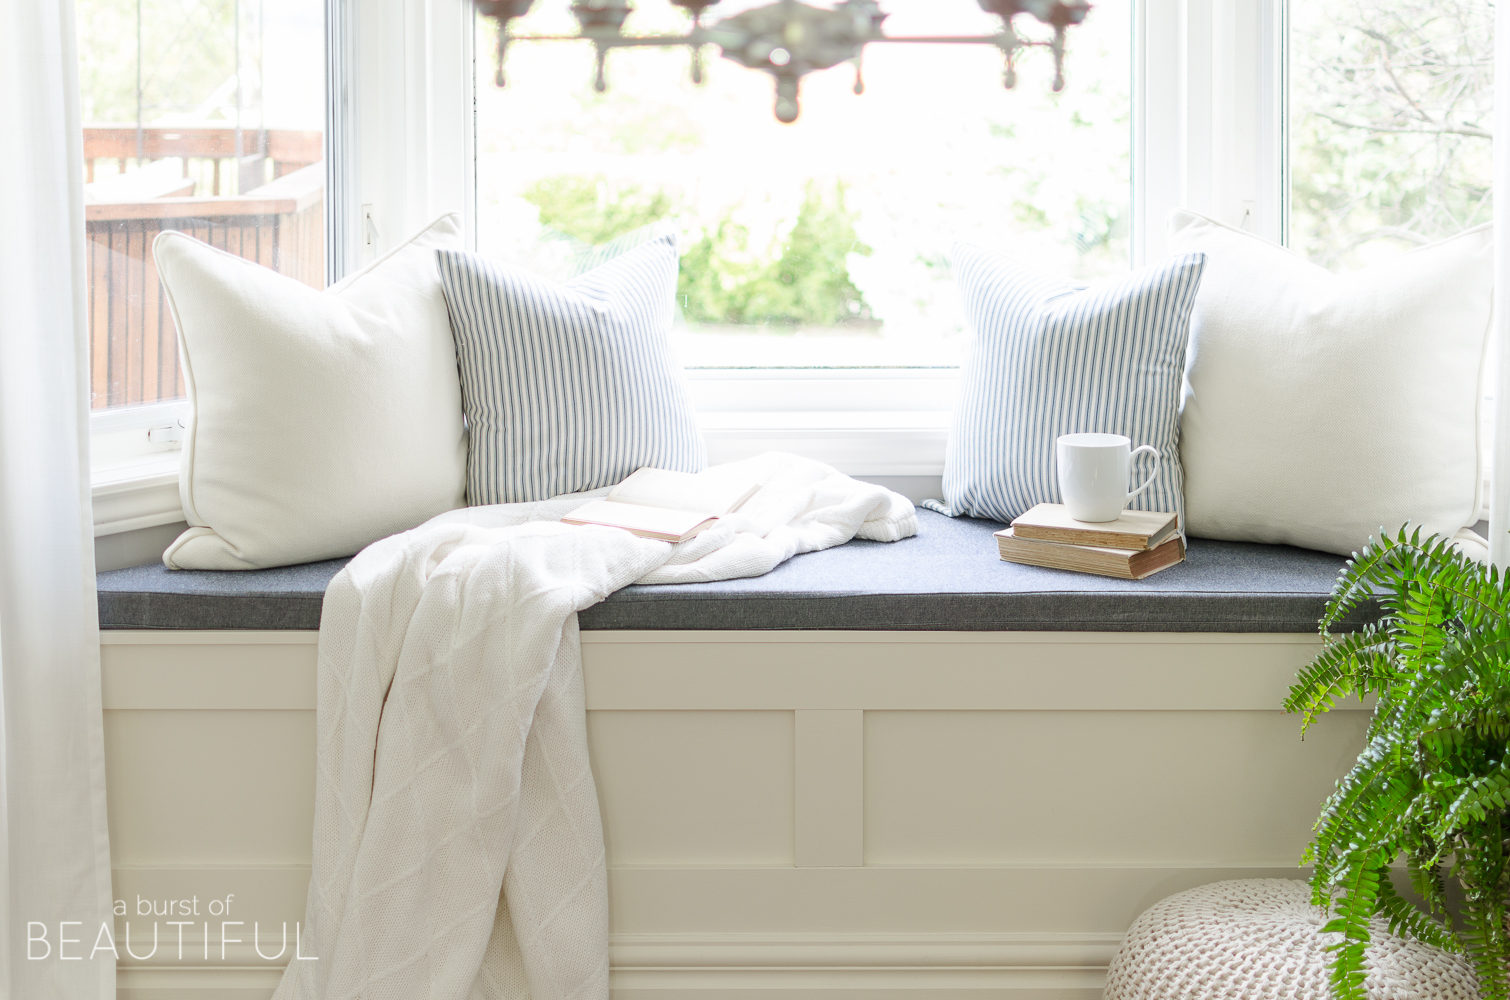 Bedroom Window Bench diy window bench with storage - a burst of beautiful